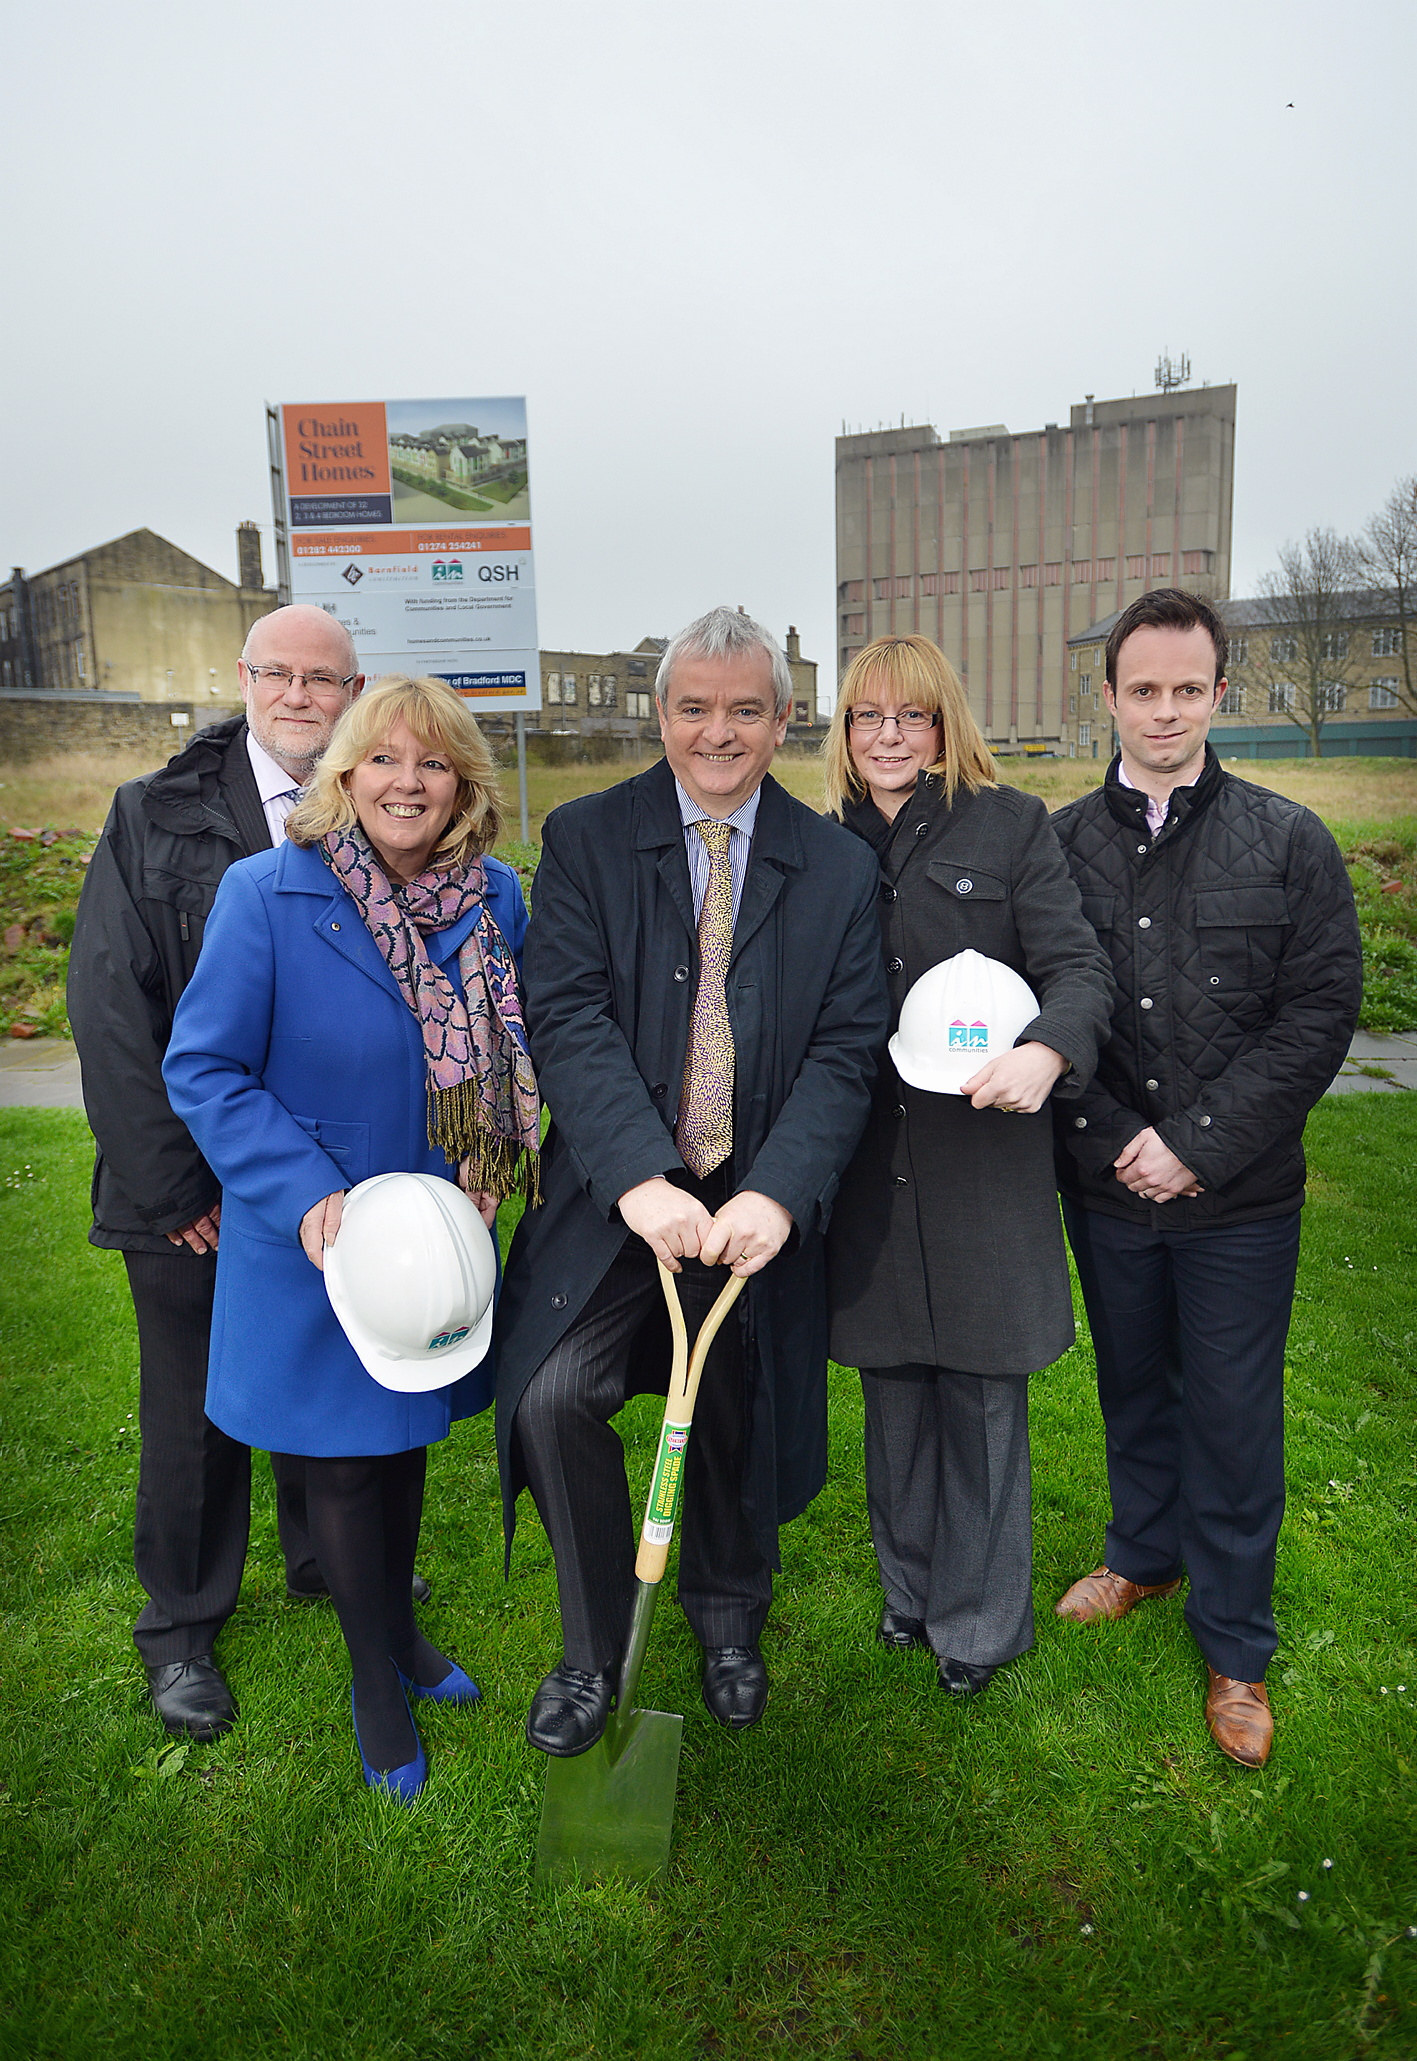 Left (from left) Richard Panter, from HCA, Geraldine Howley, of Incommunities, David Orr, from the National Housing Federation, Nichola Clayton, from QSH, and Dan Gaunt, from Barfield Construction